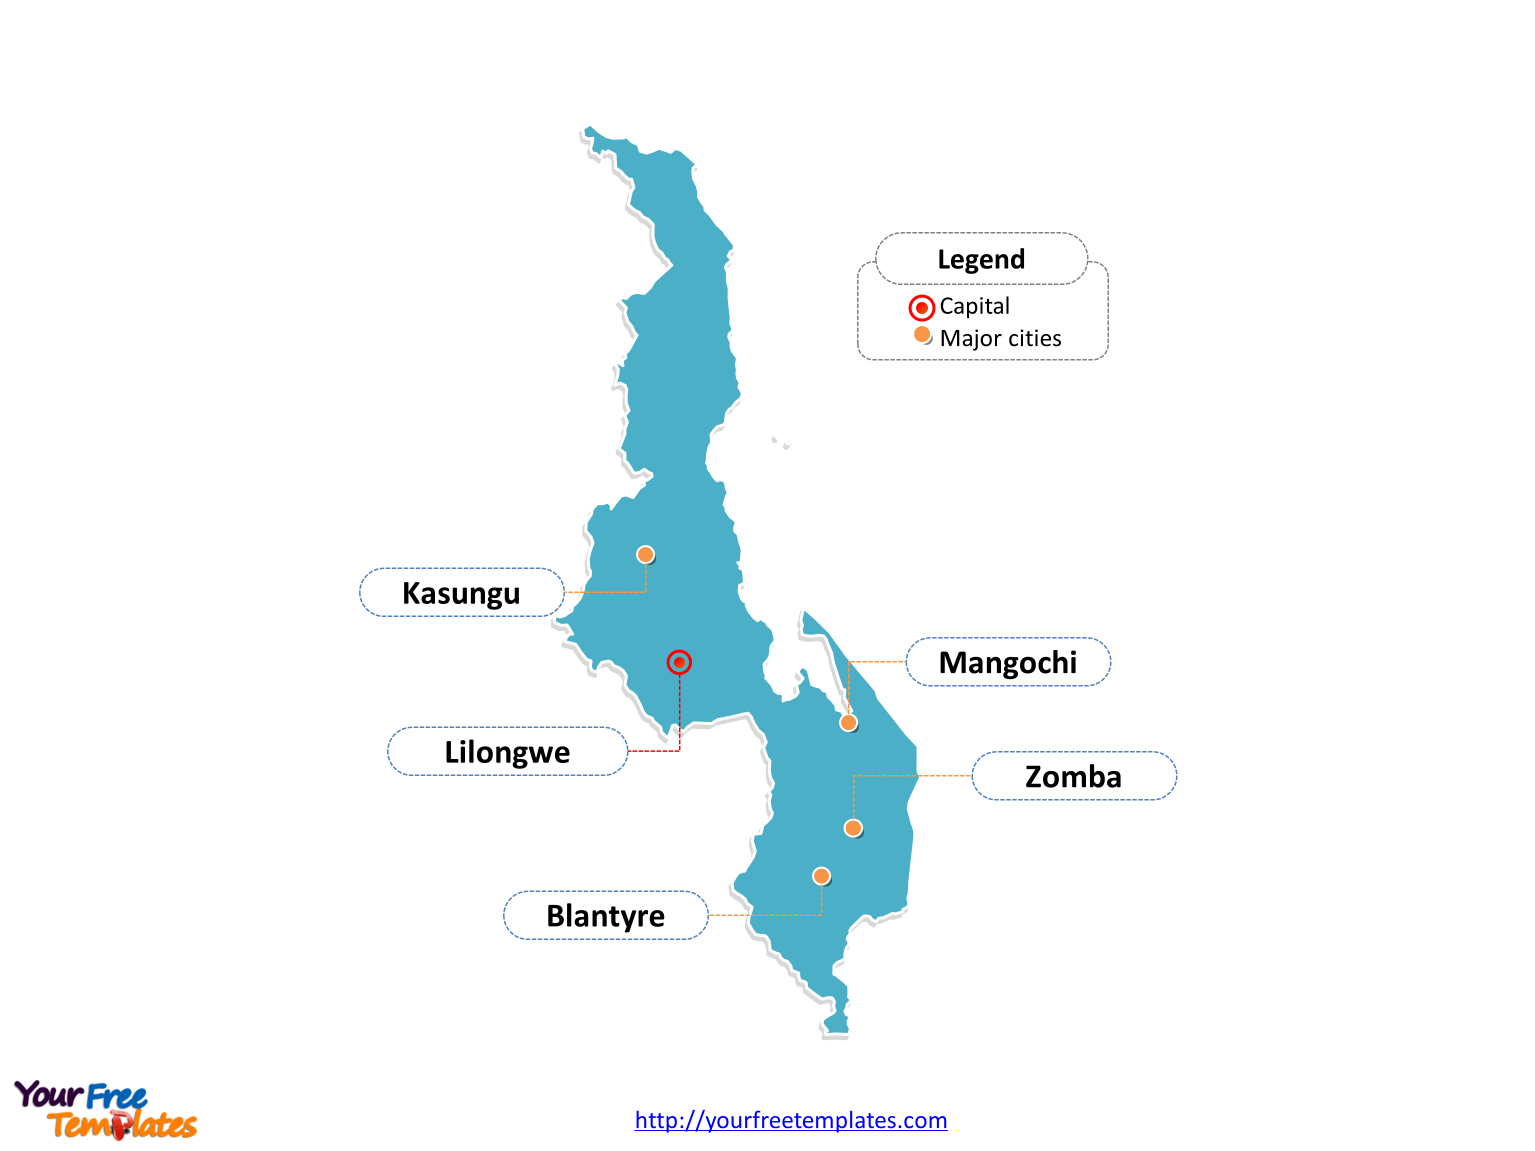 Malawi map labeled with cities